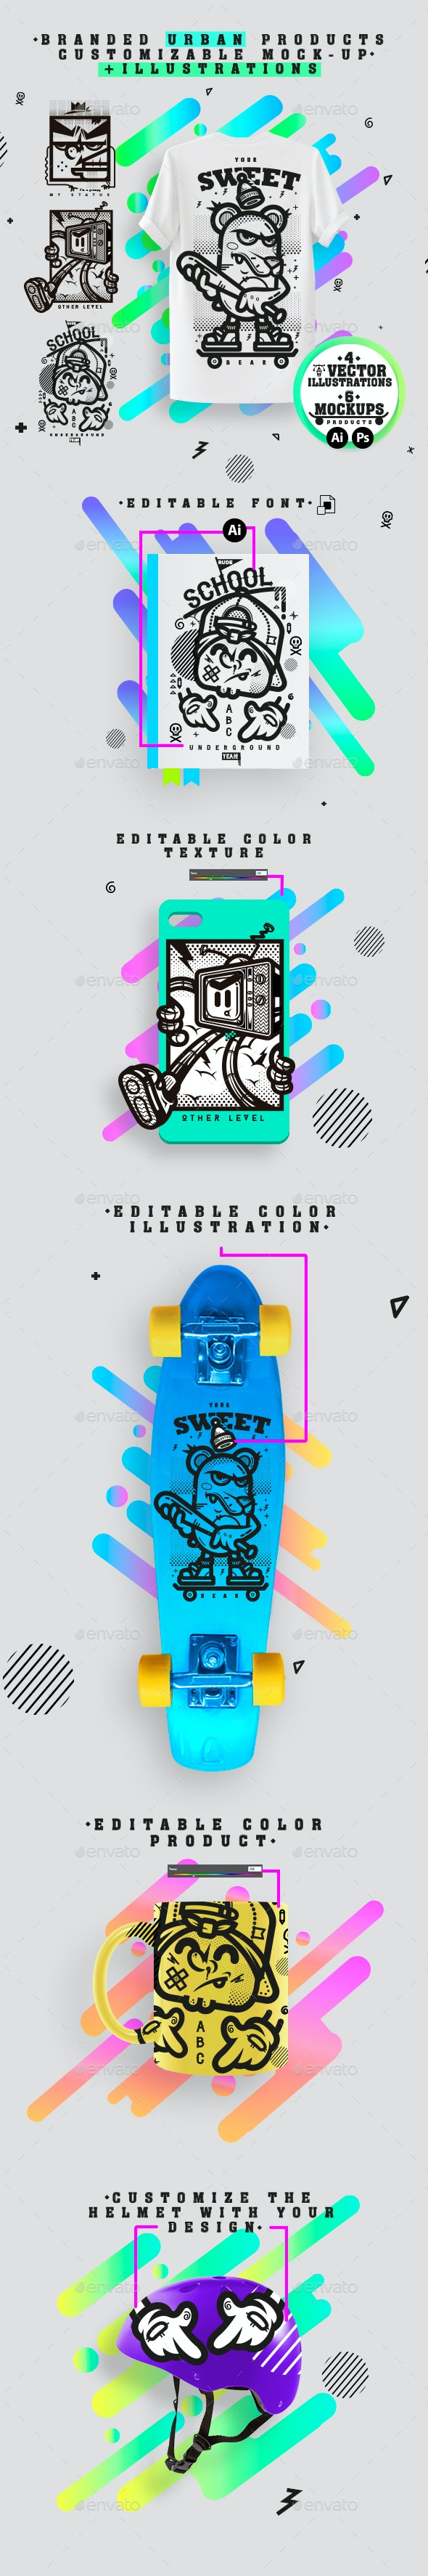 BRANDED PRODUCTOS URBANS WITH ILLUSTRATIONS